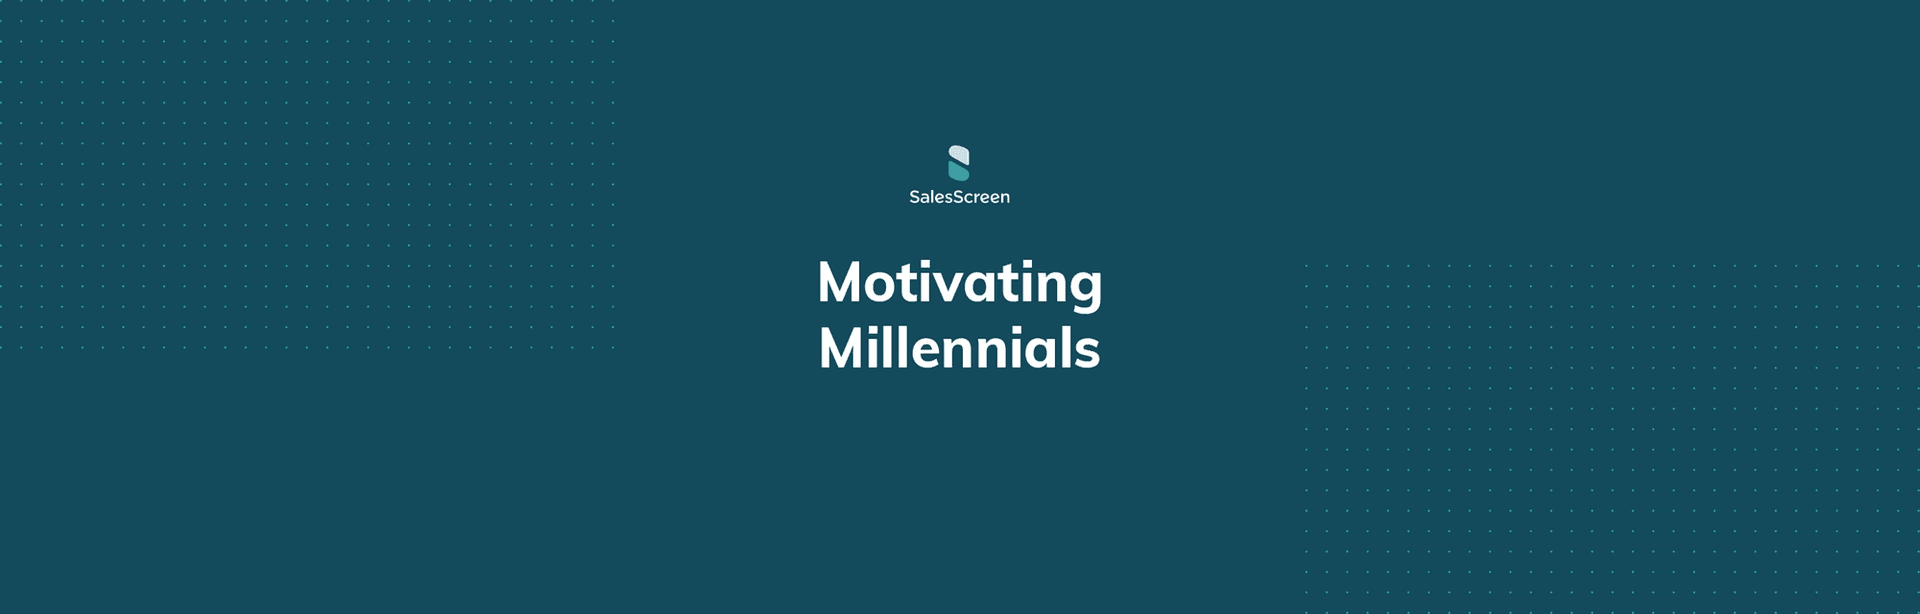 Motivating Millennials [eBook]